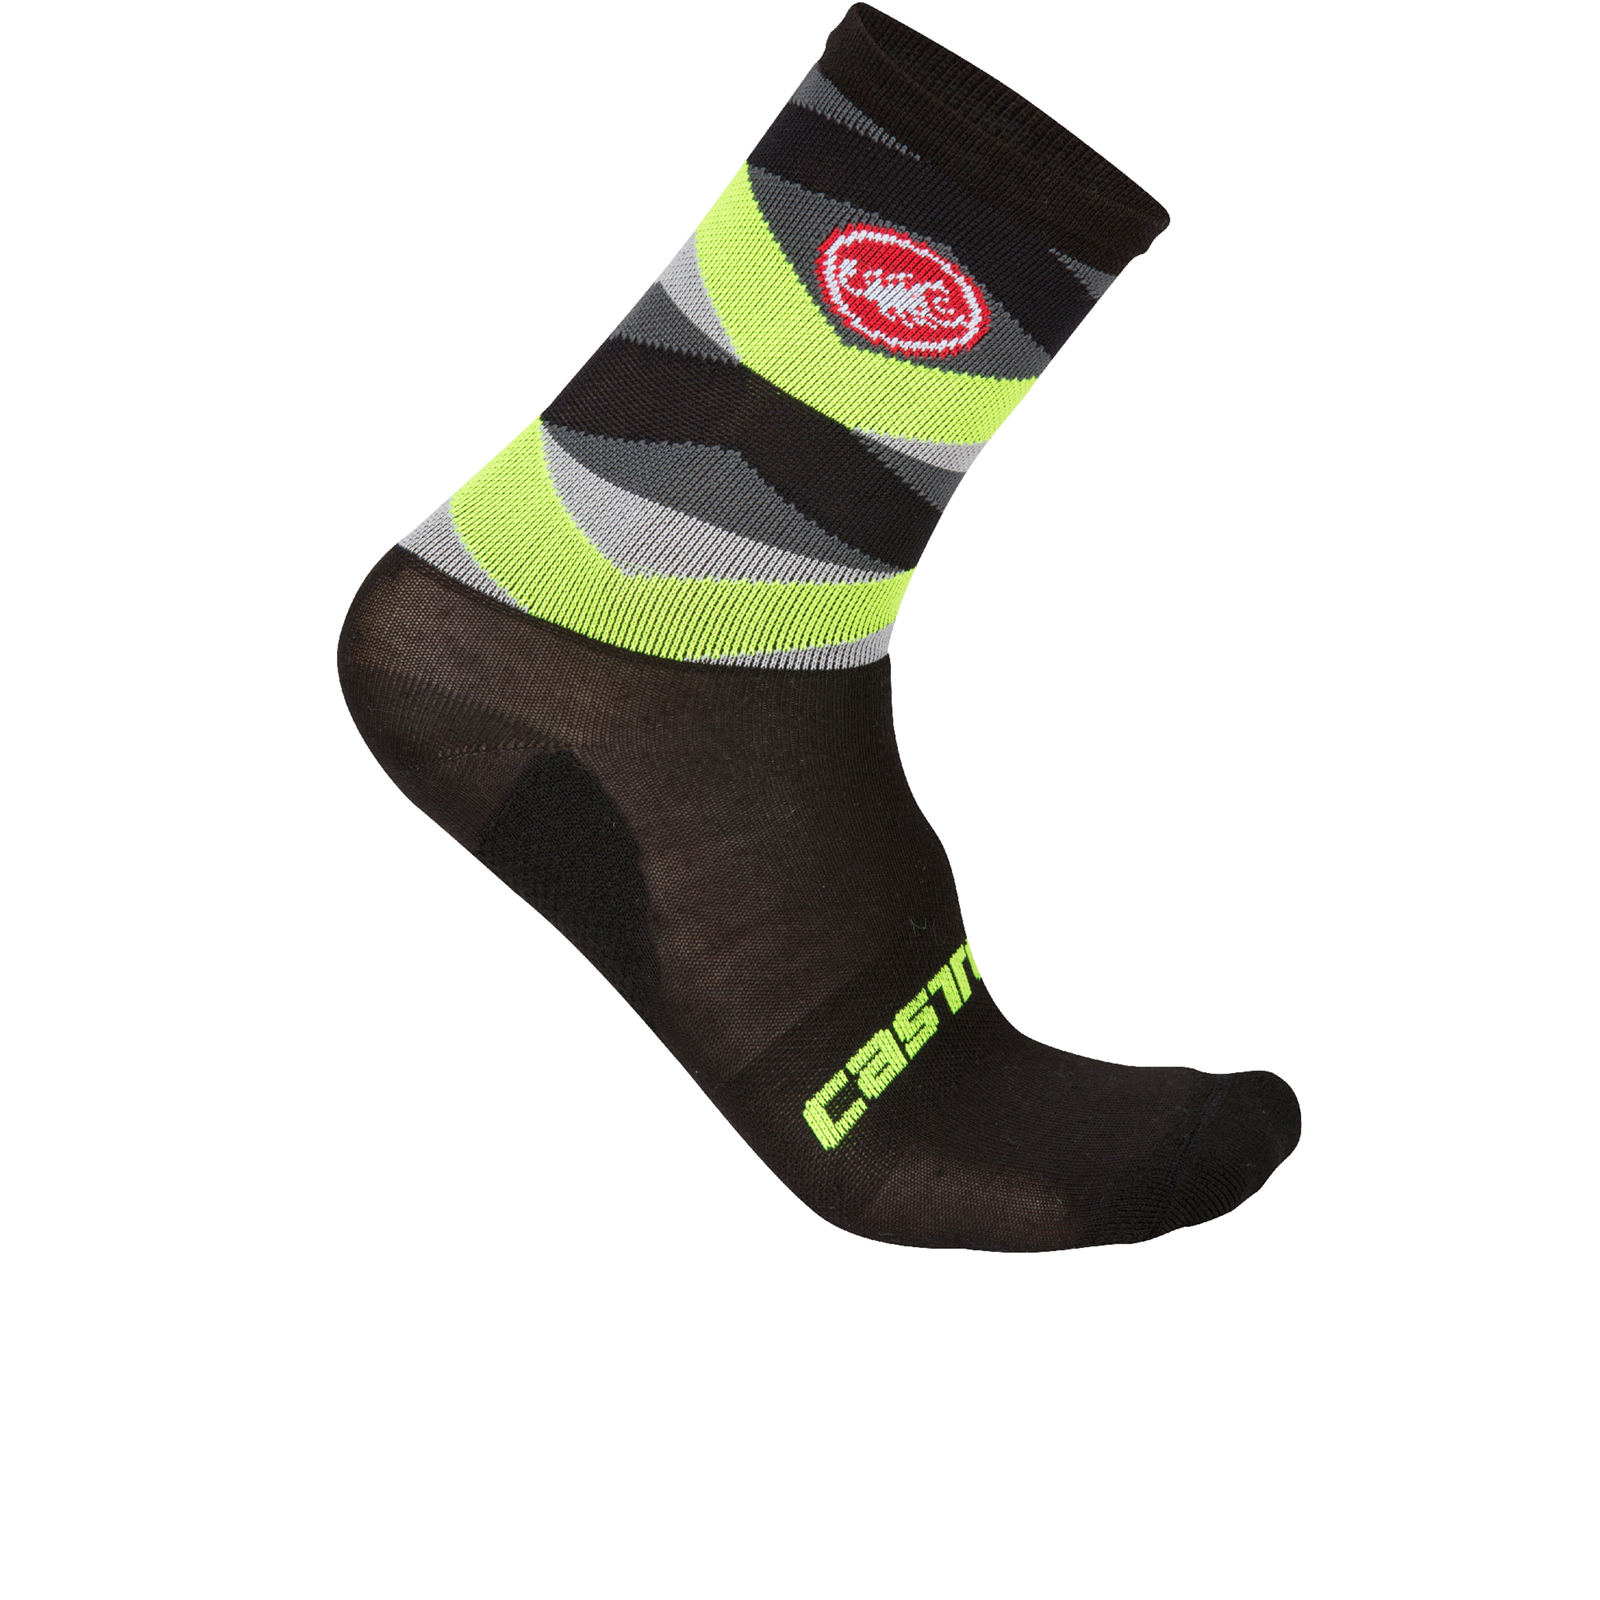 Castelli Fatto 12 Socks - Black/Yellow Fluo